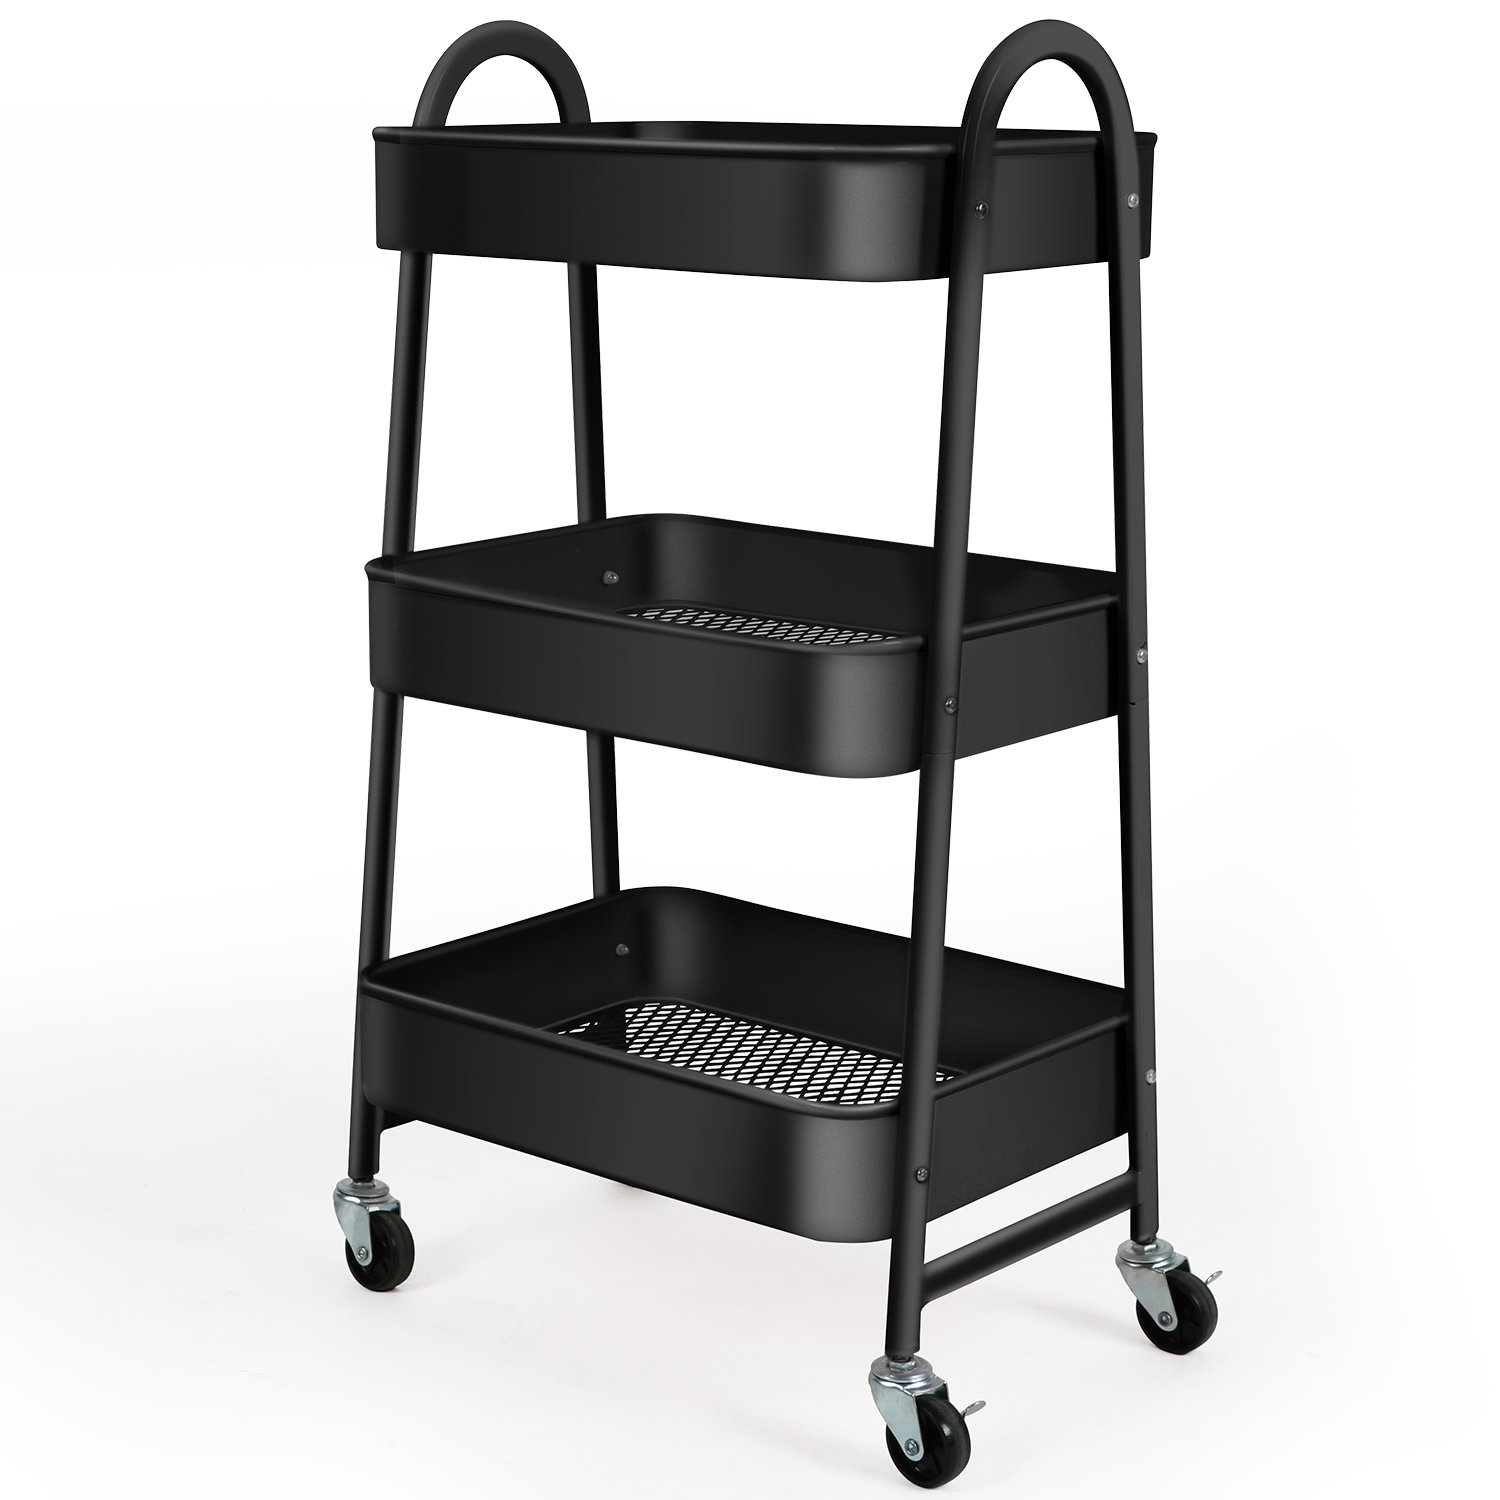 Merveilleux Amazon.com : 3 Tier Utility Rolling Cart With Large Storage And Metal  Wheels For Office, Kitchen, Bedroom, Bathroom, Black 130839 : Office  Products